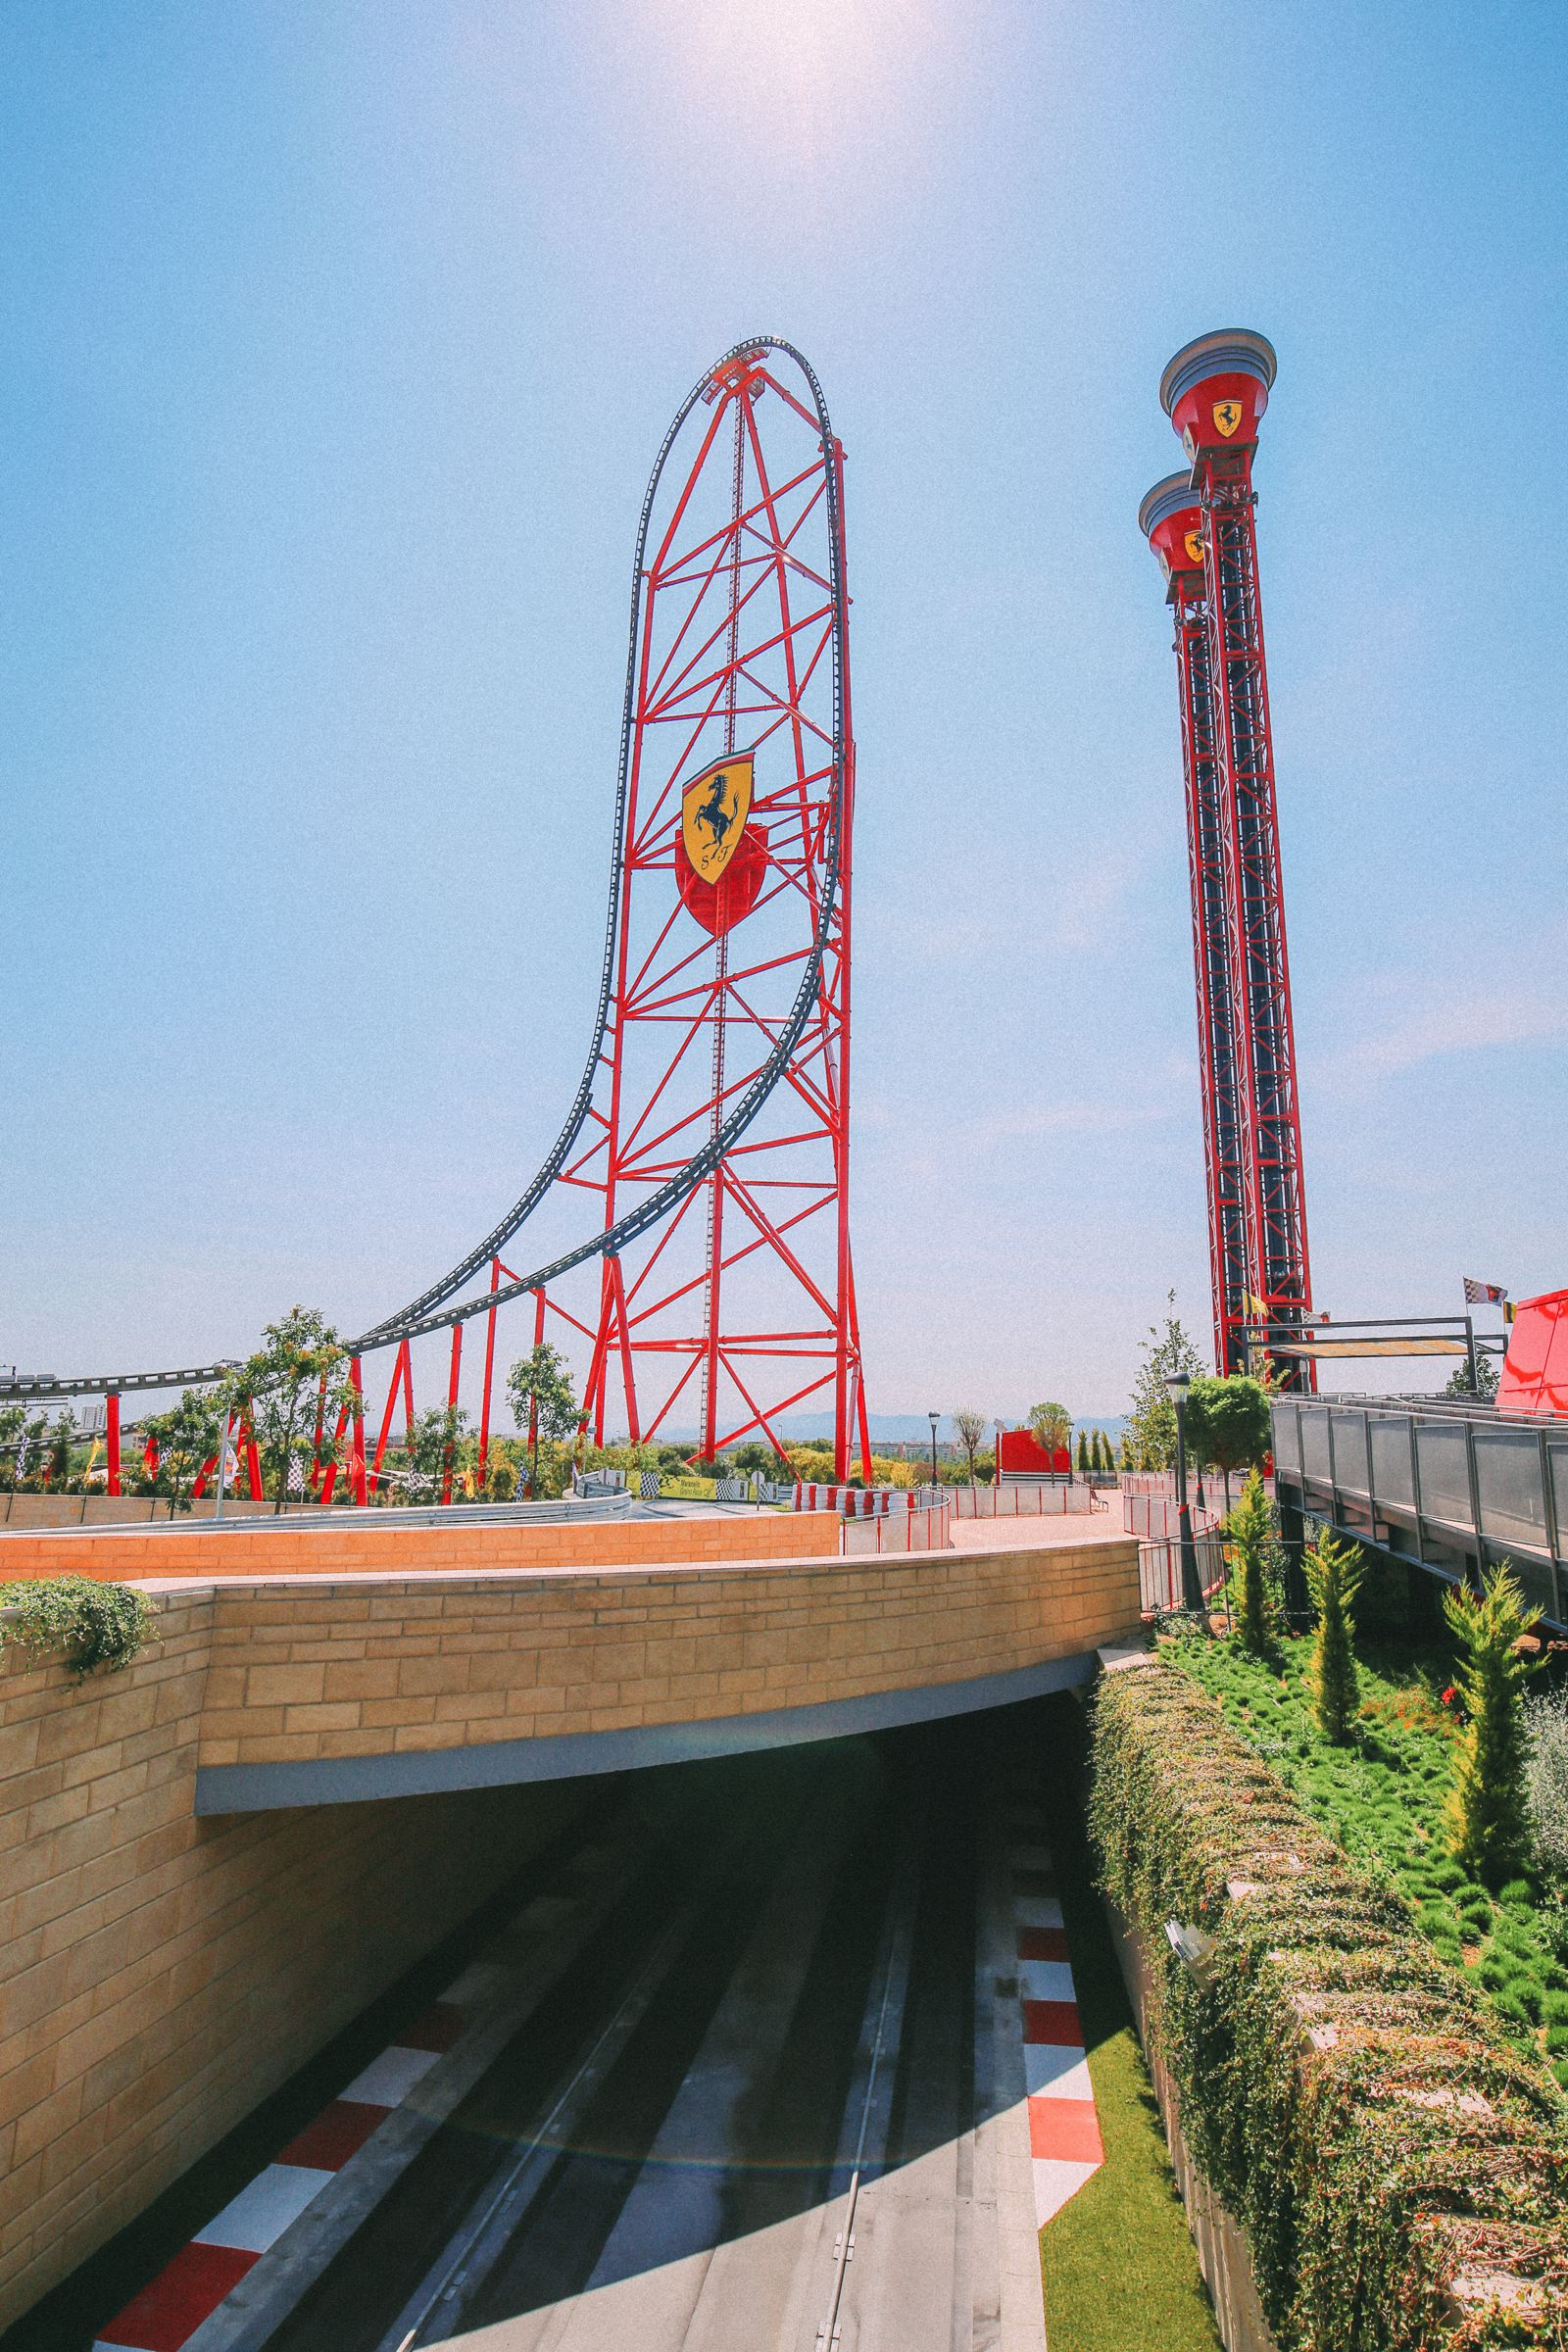 In Search Of Sunshine And Adventure... In PortAventura, Spain (62)